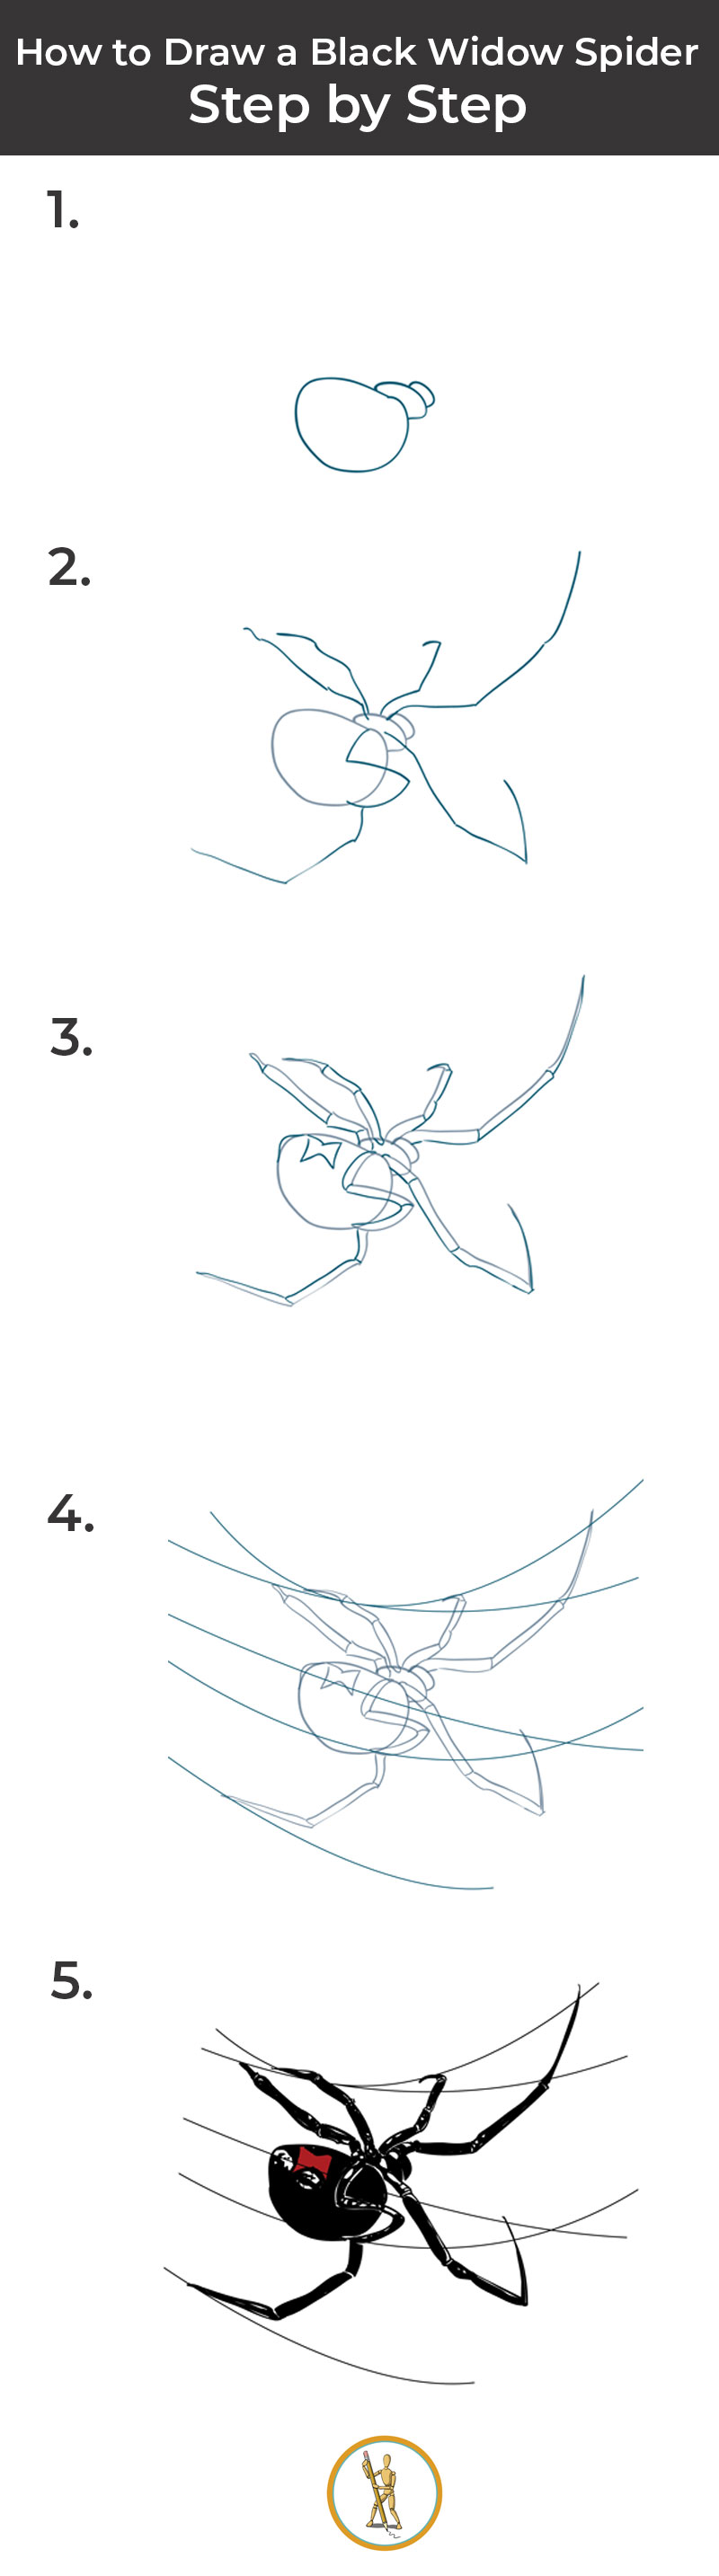 How To Draw A Black Widow Spider Step By Step